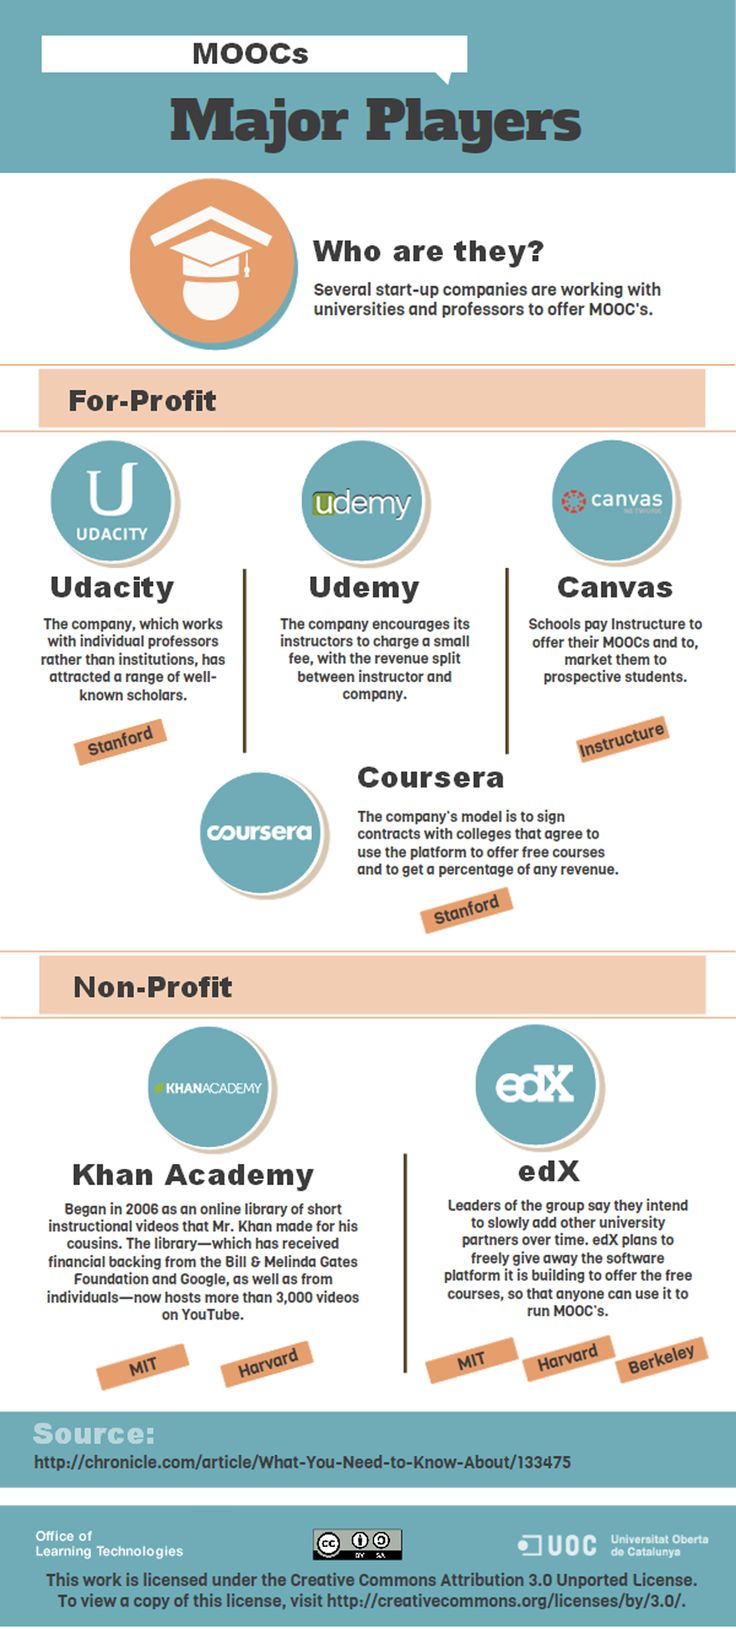 #MOOCs major players